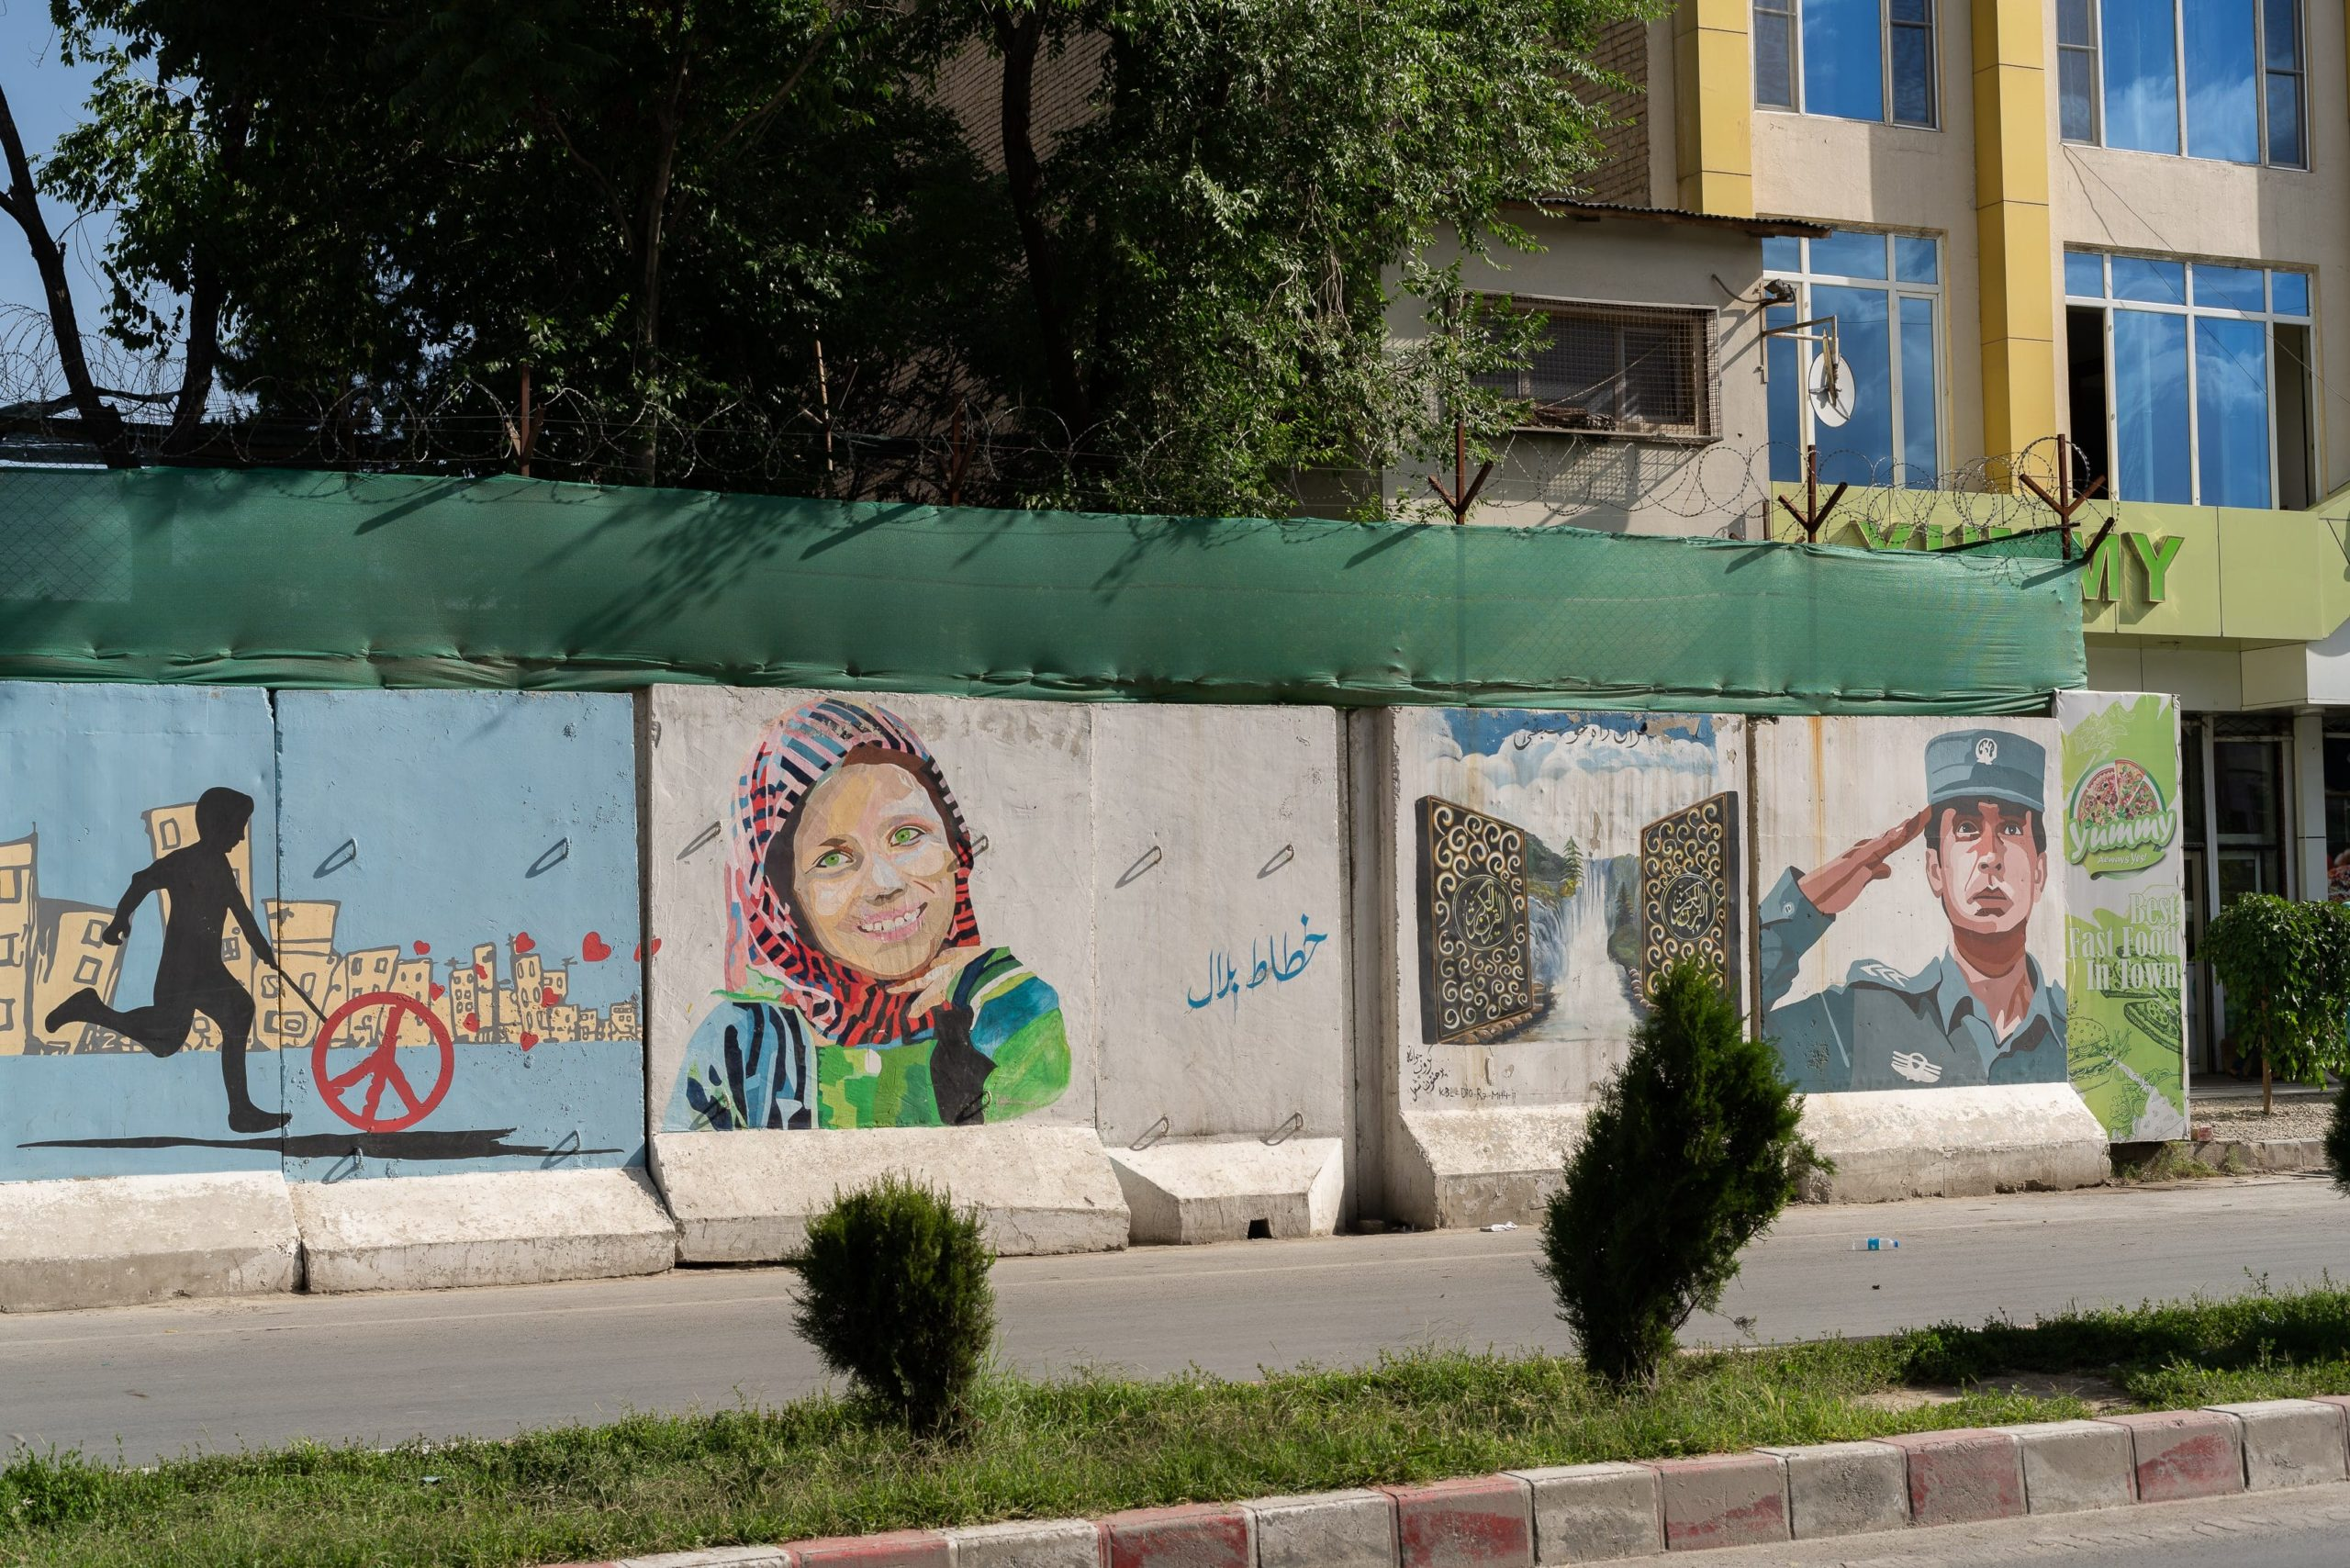 A blast wall in Kabul that has been painted with graffiti promoting peace.